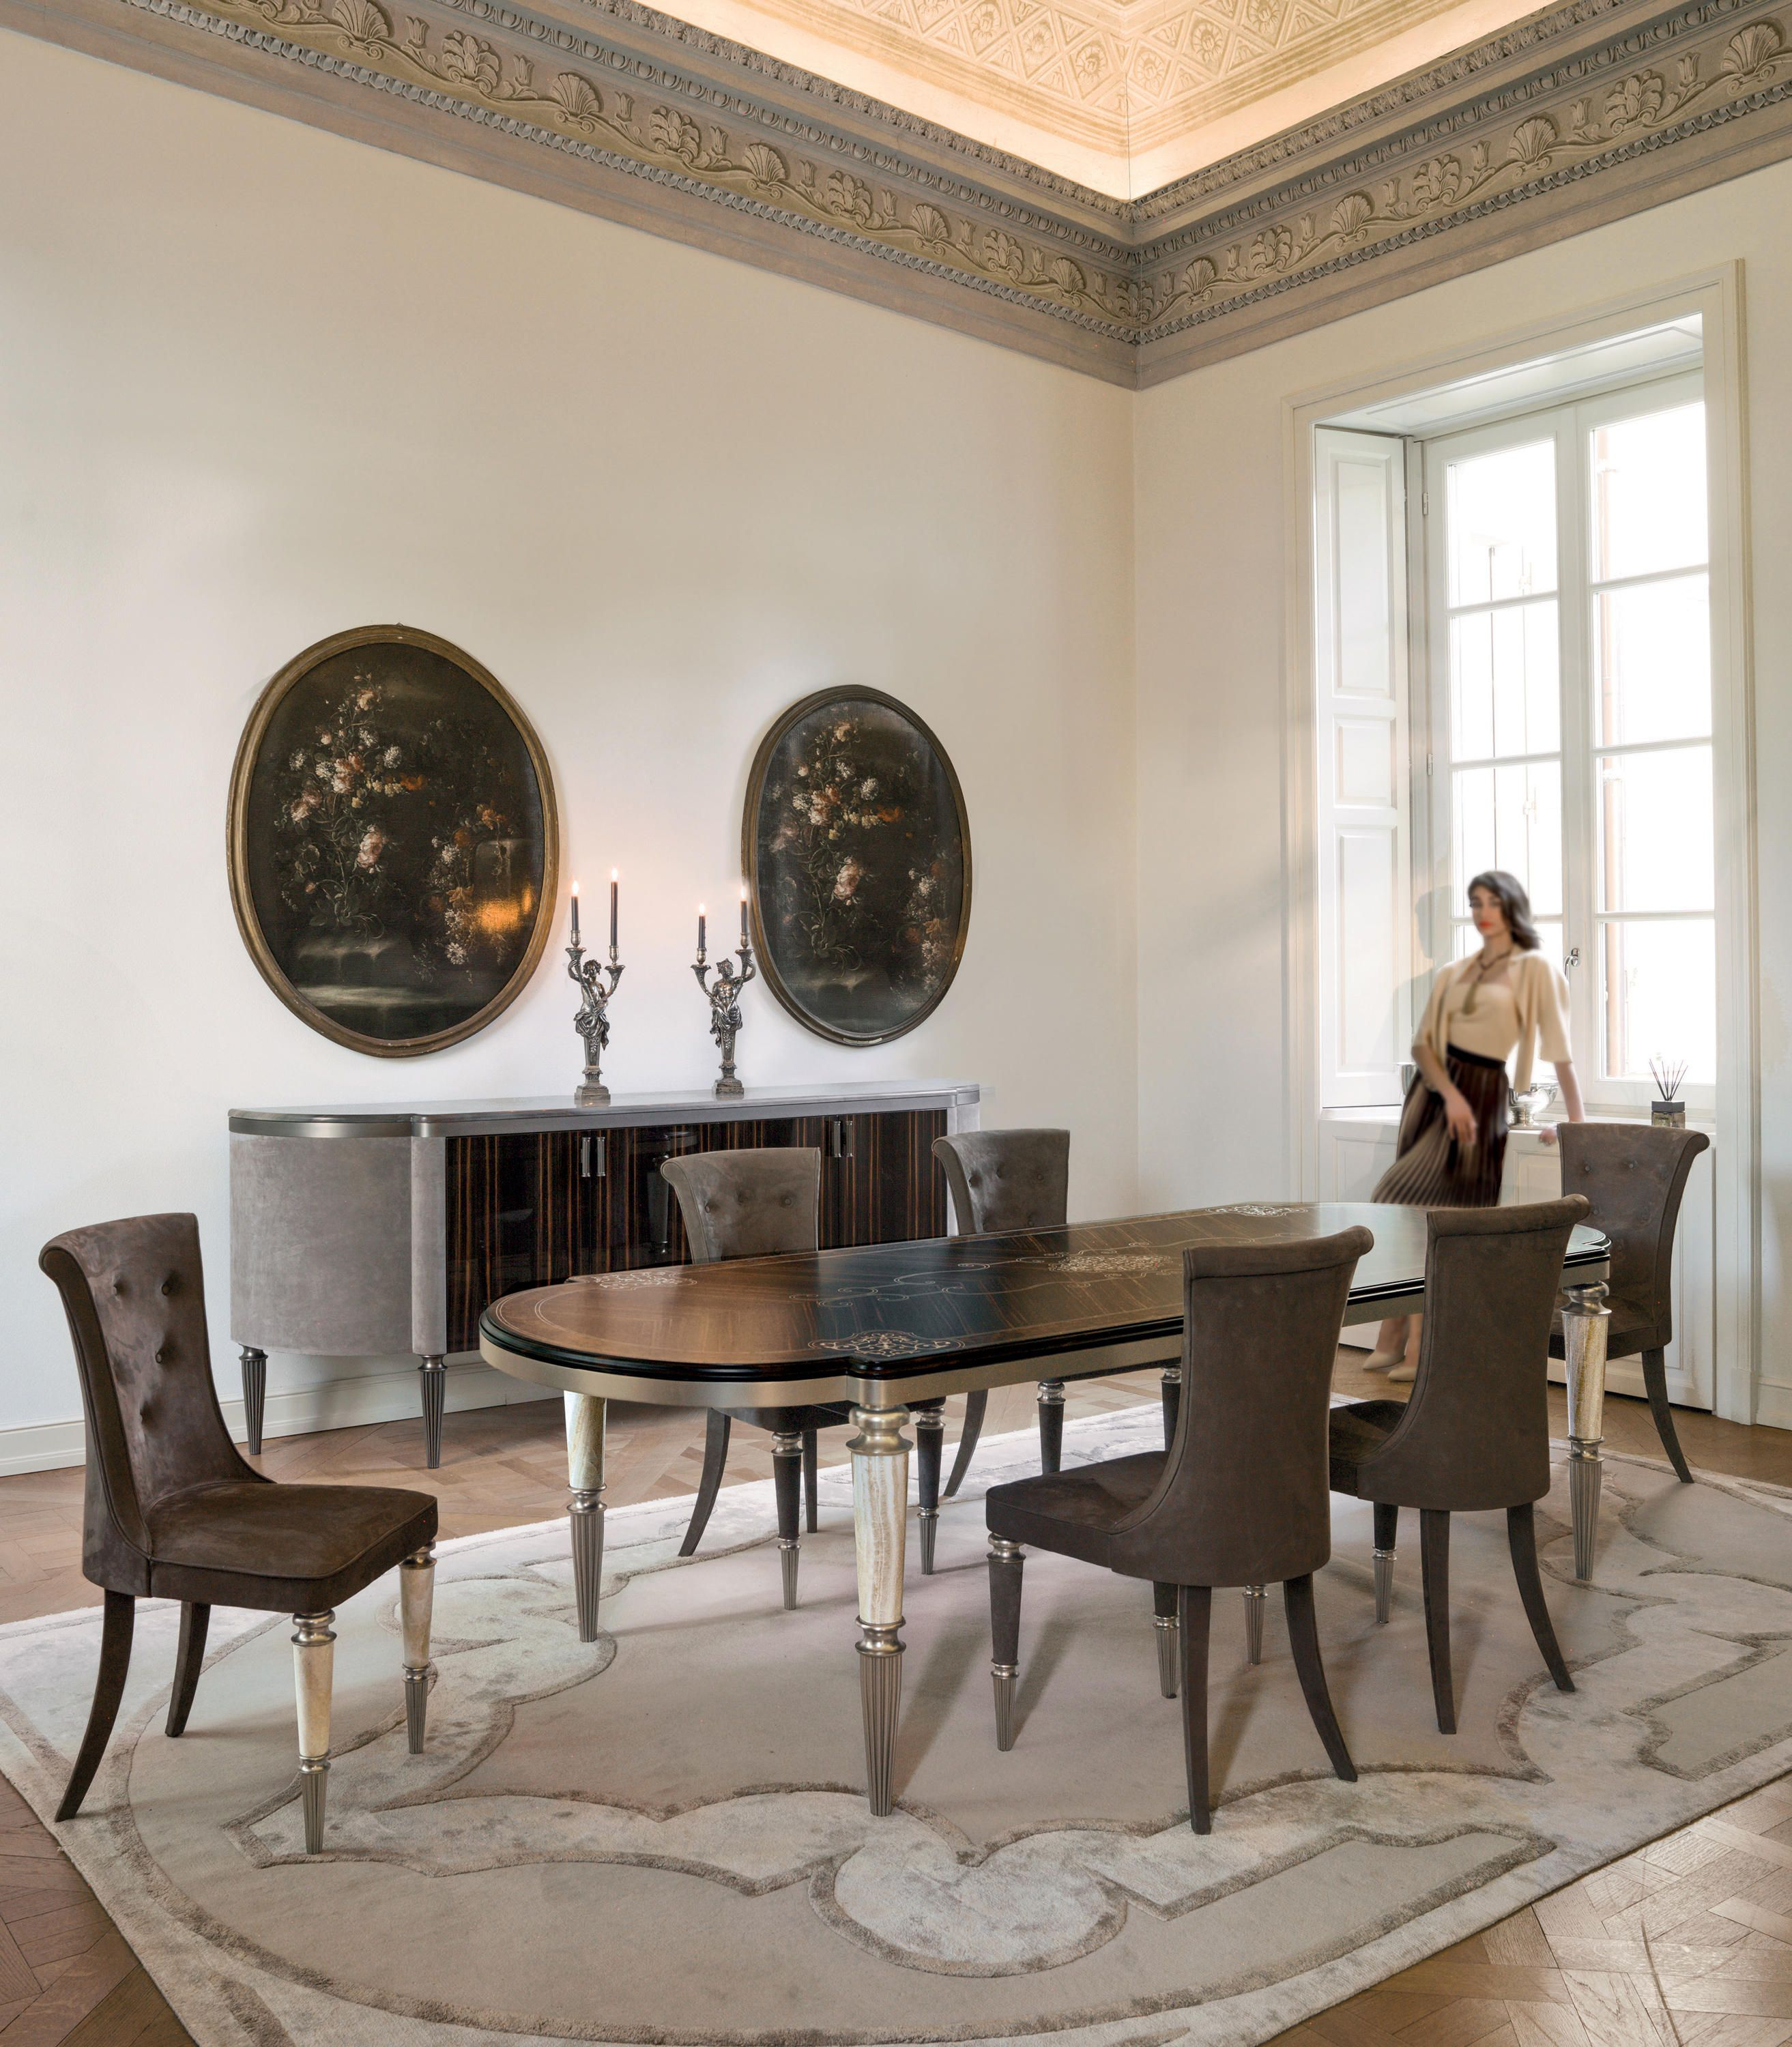 Layton Dining Tables From Longhi S P A Architonic Hotel